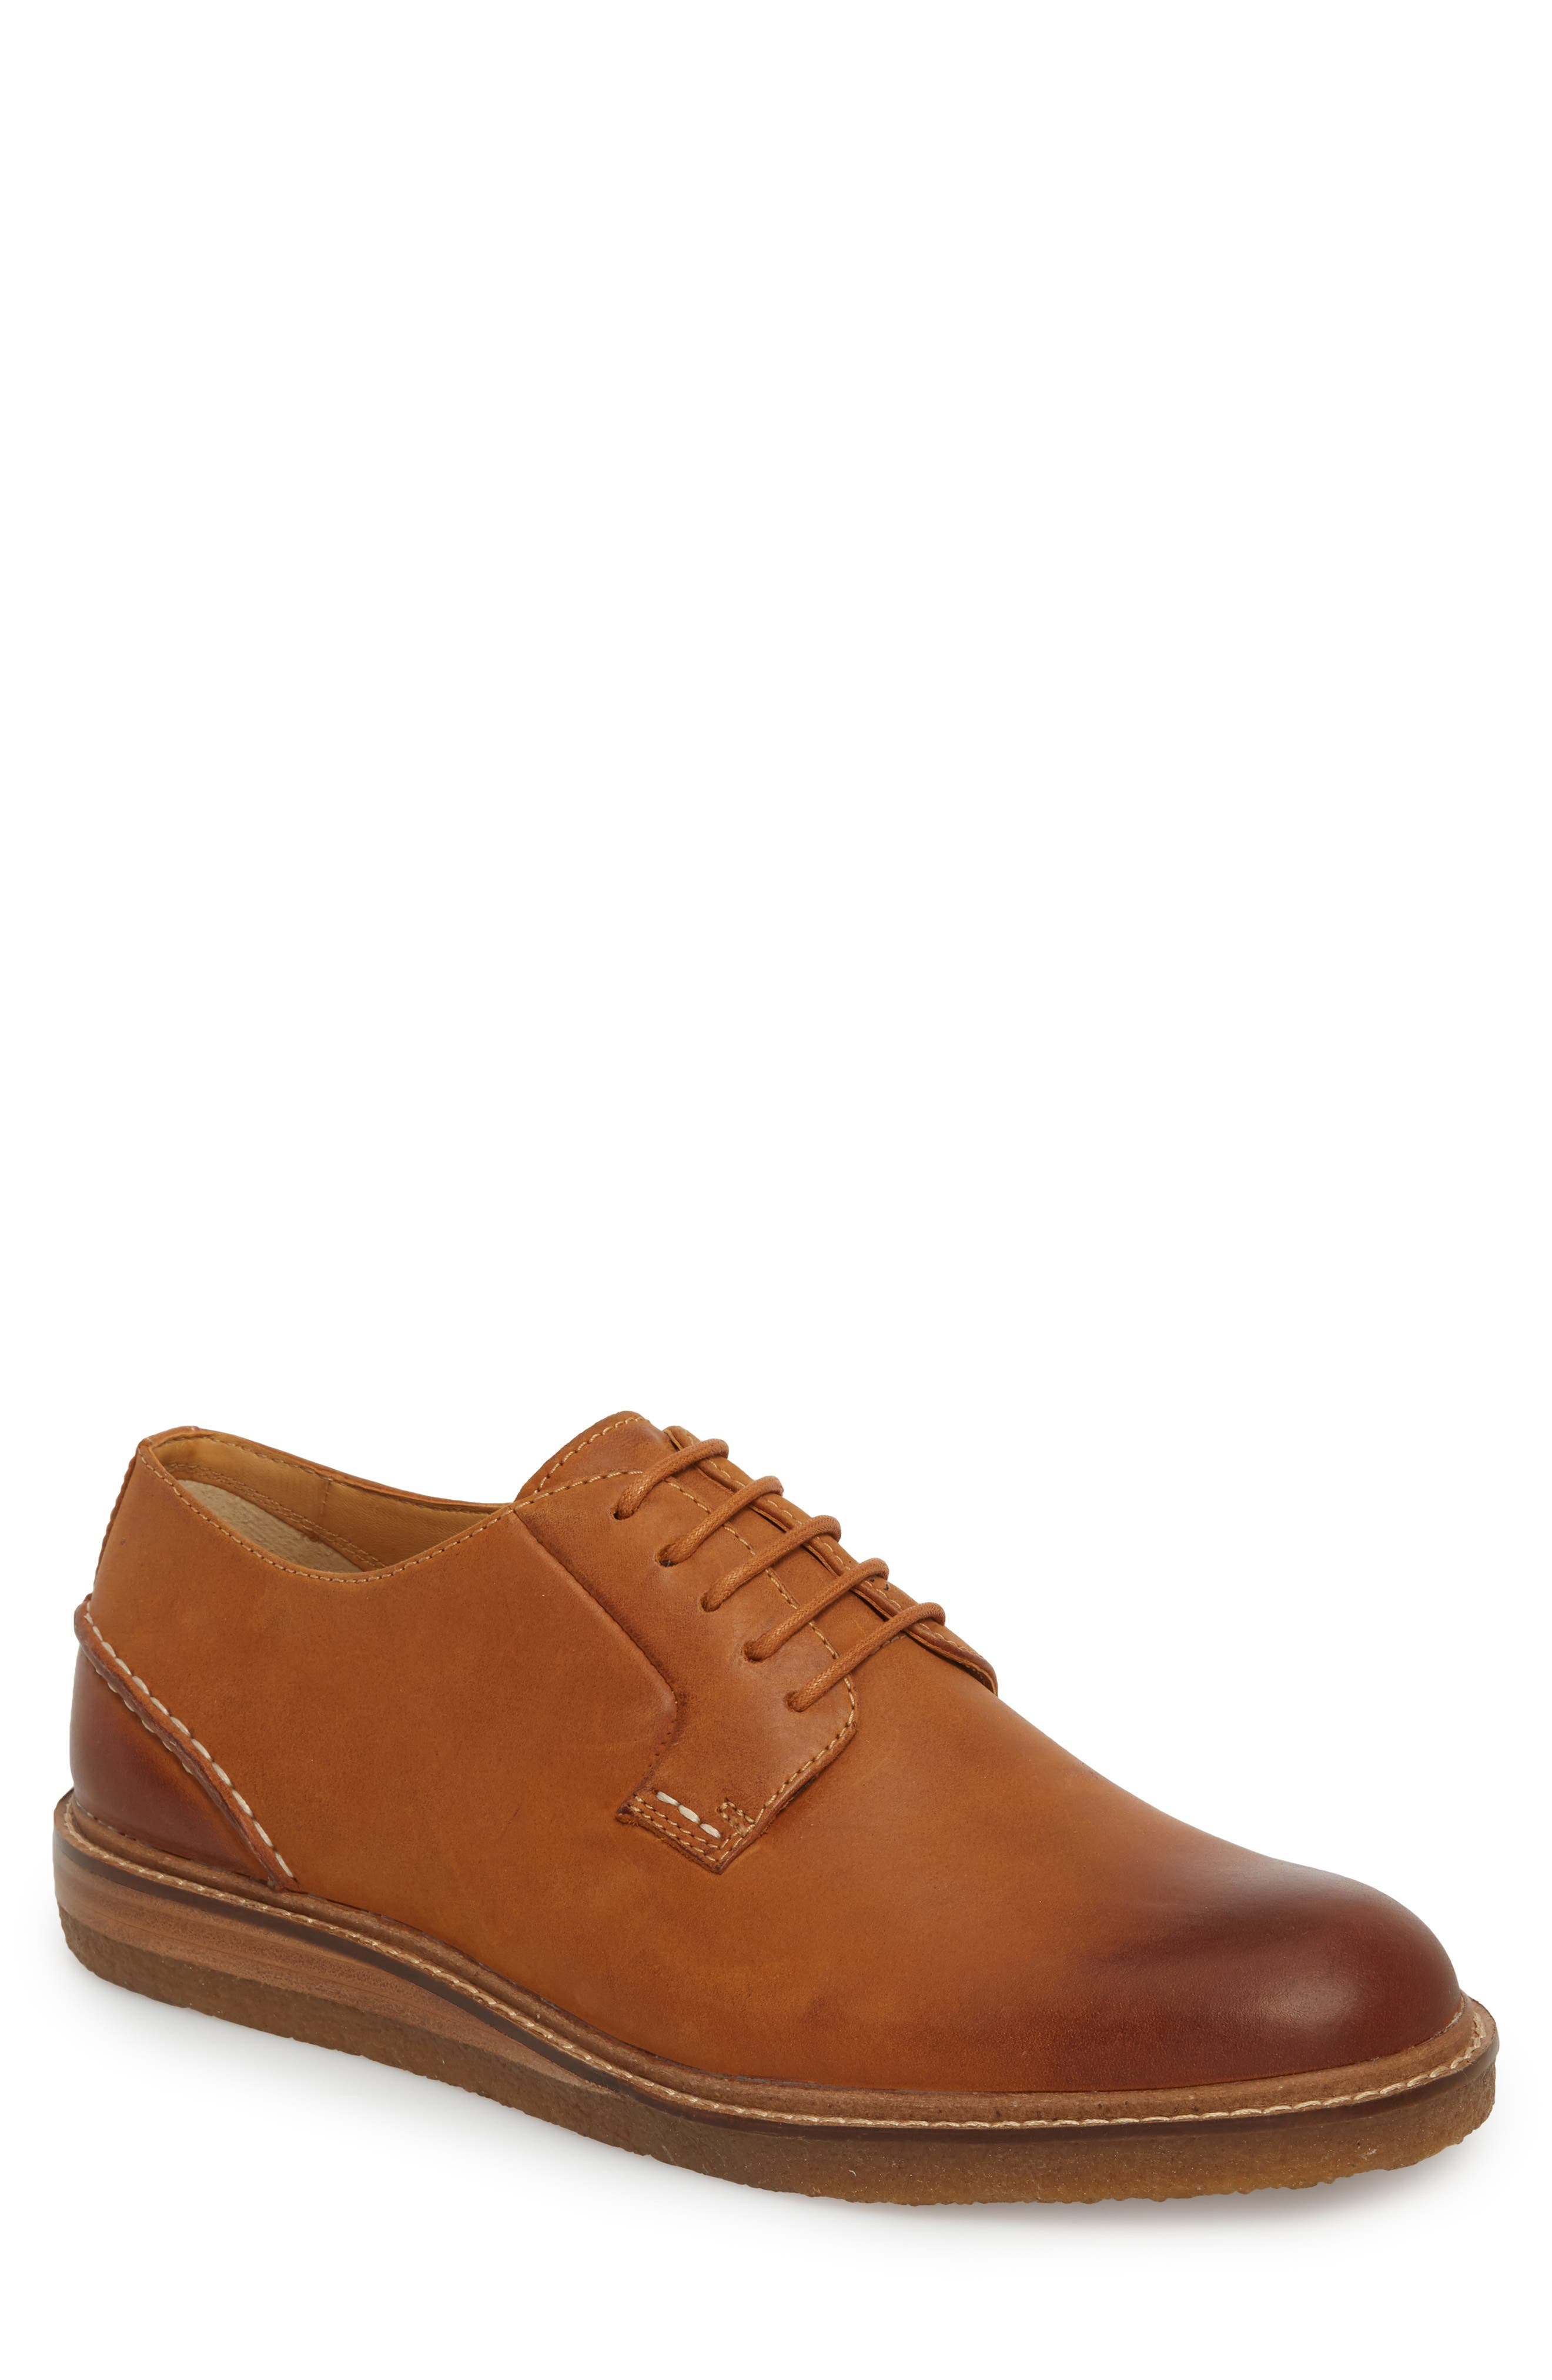 Gold Cup Plain Toe Derby,                         Main,                         color, Tan Leather